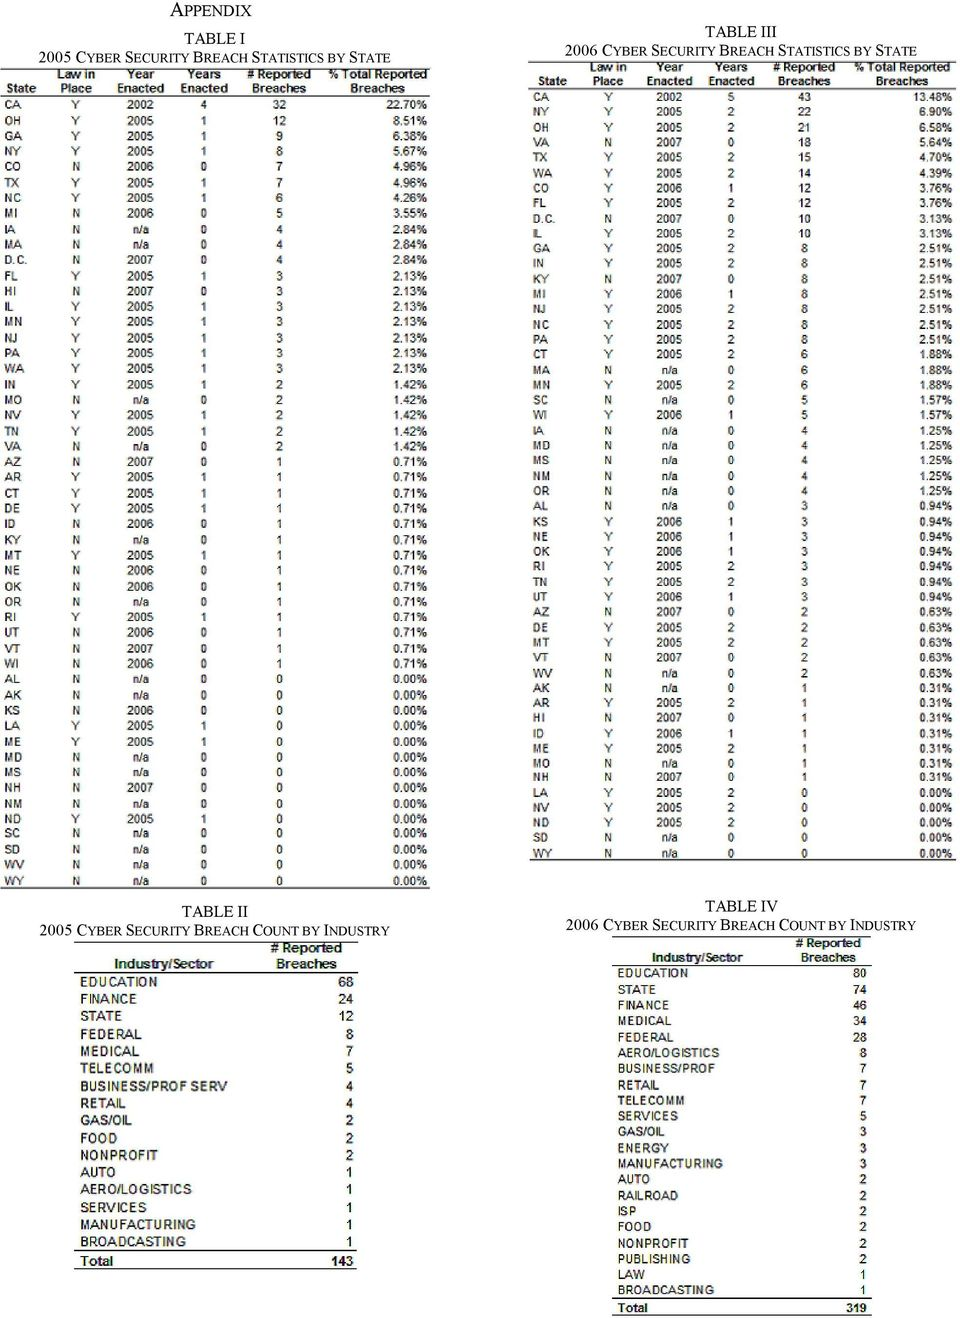 BY STATE TABLE II 2005 CYBER SECURITY BREACH COUNT BY